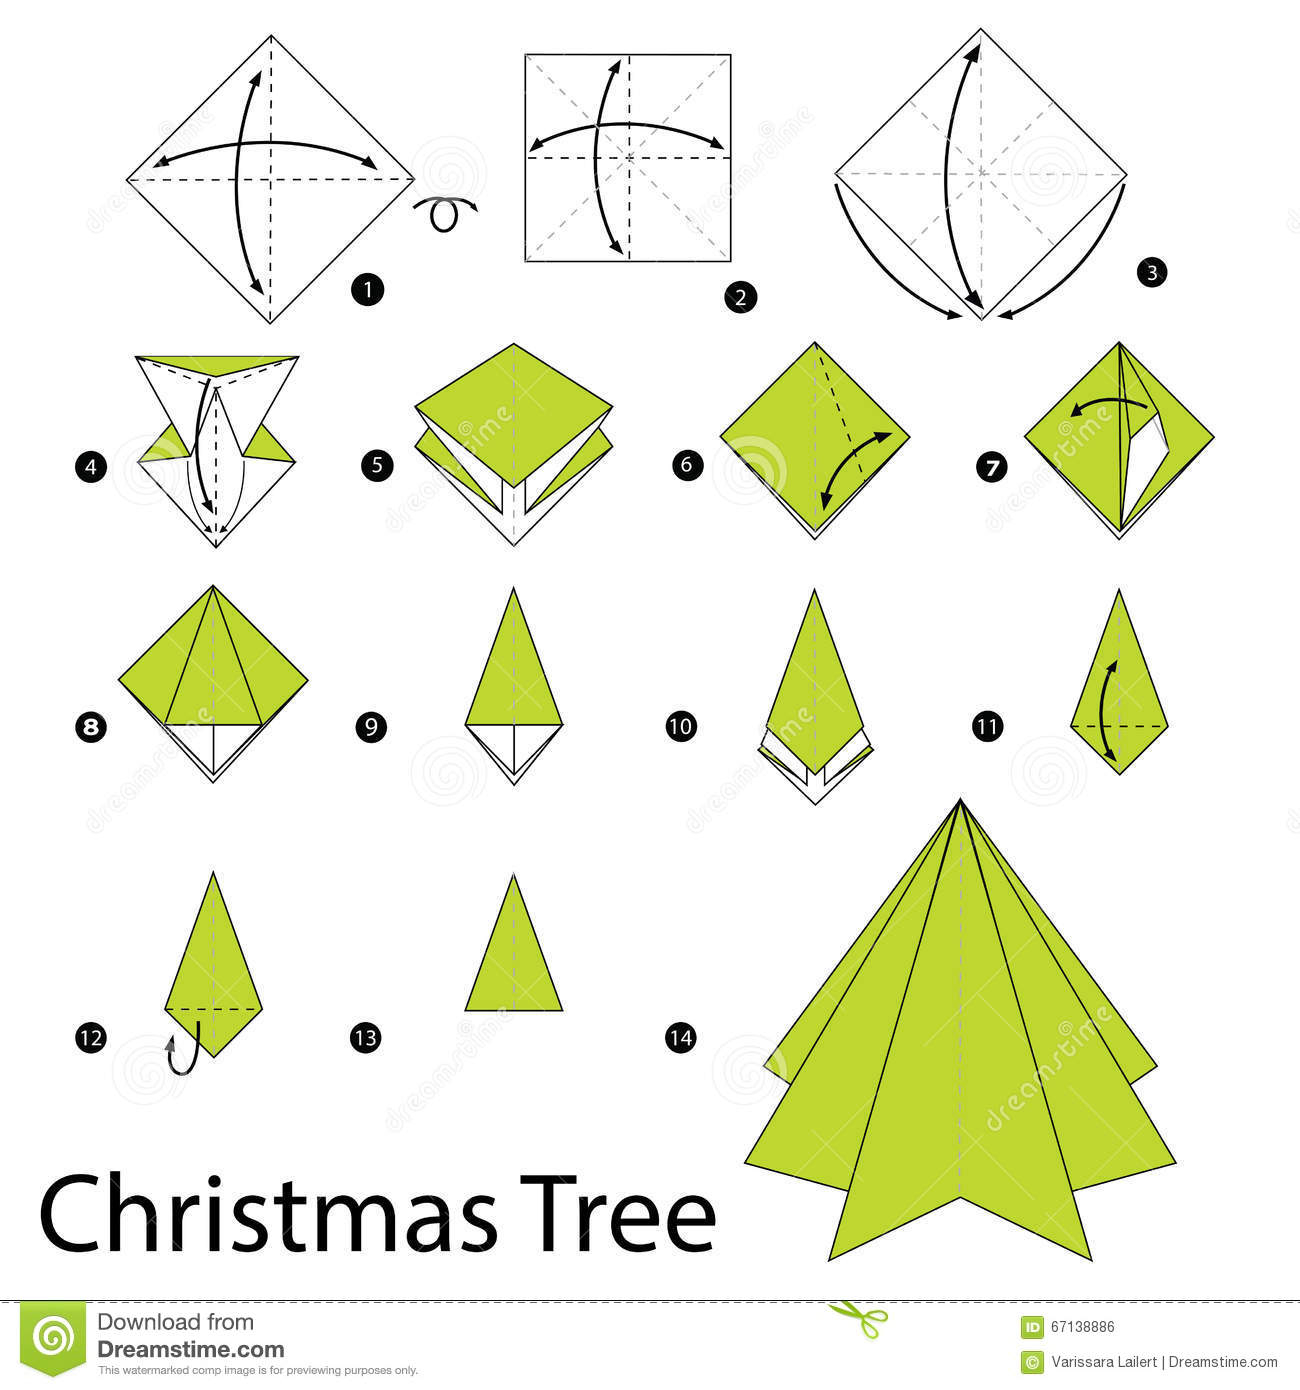 Easy Money Origami Instructions For Kids Christmas Tree Christmas Tree Origami How To Make A Christmas Tree